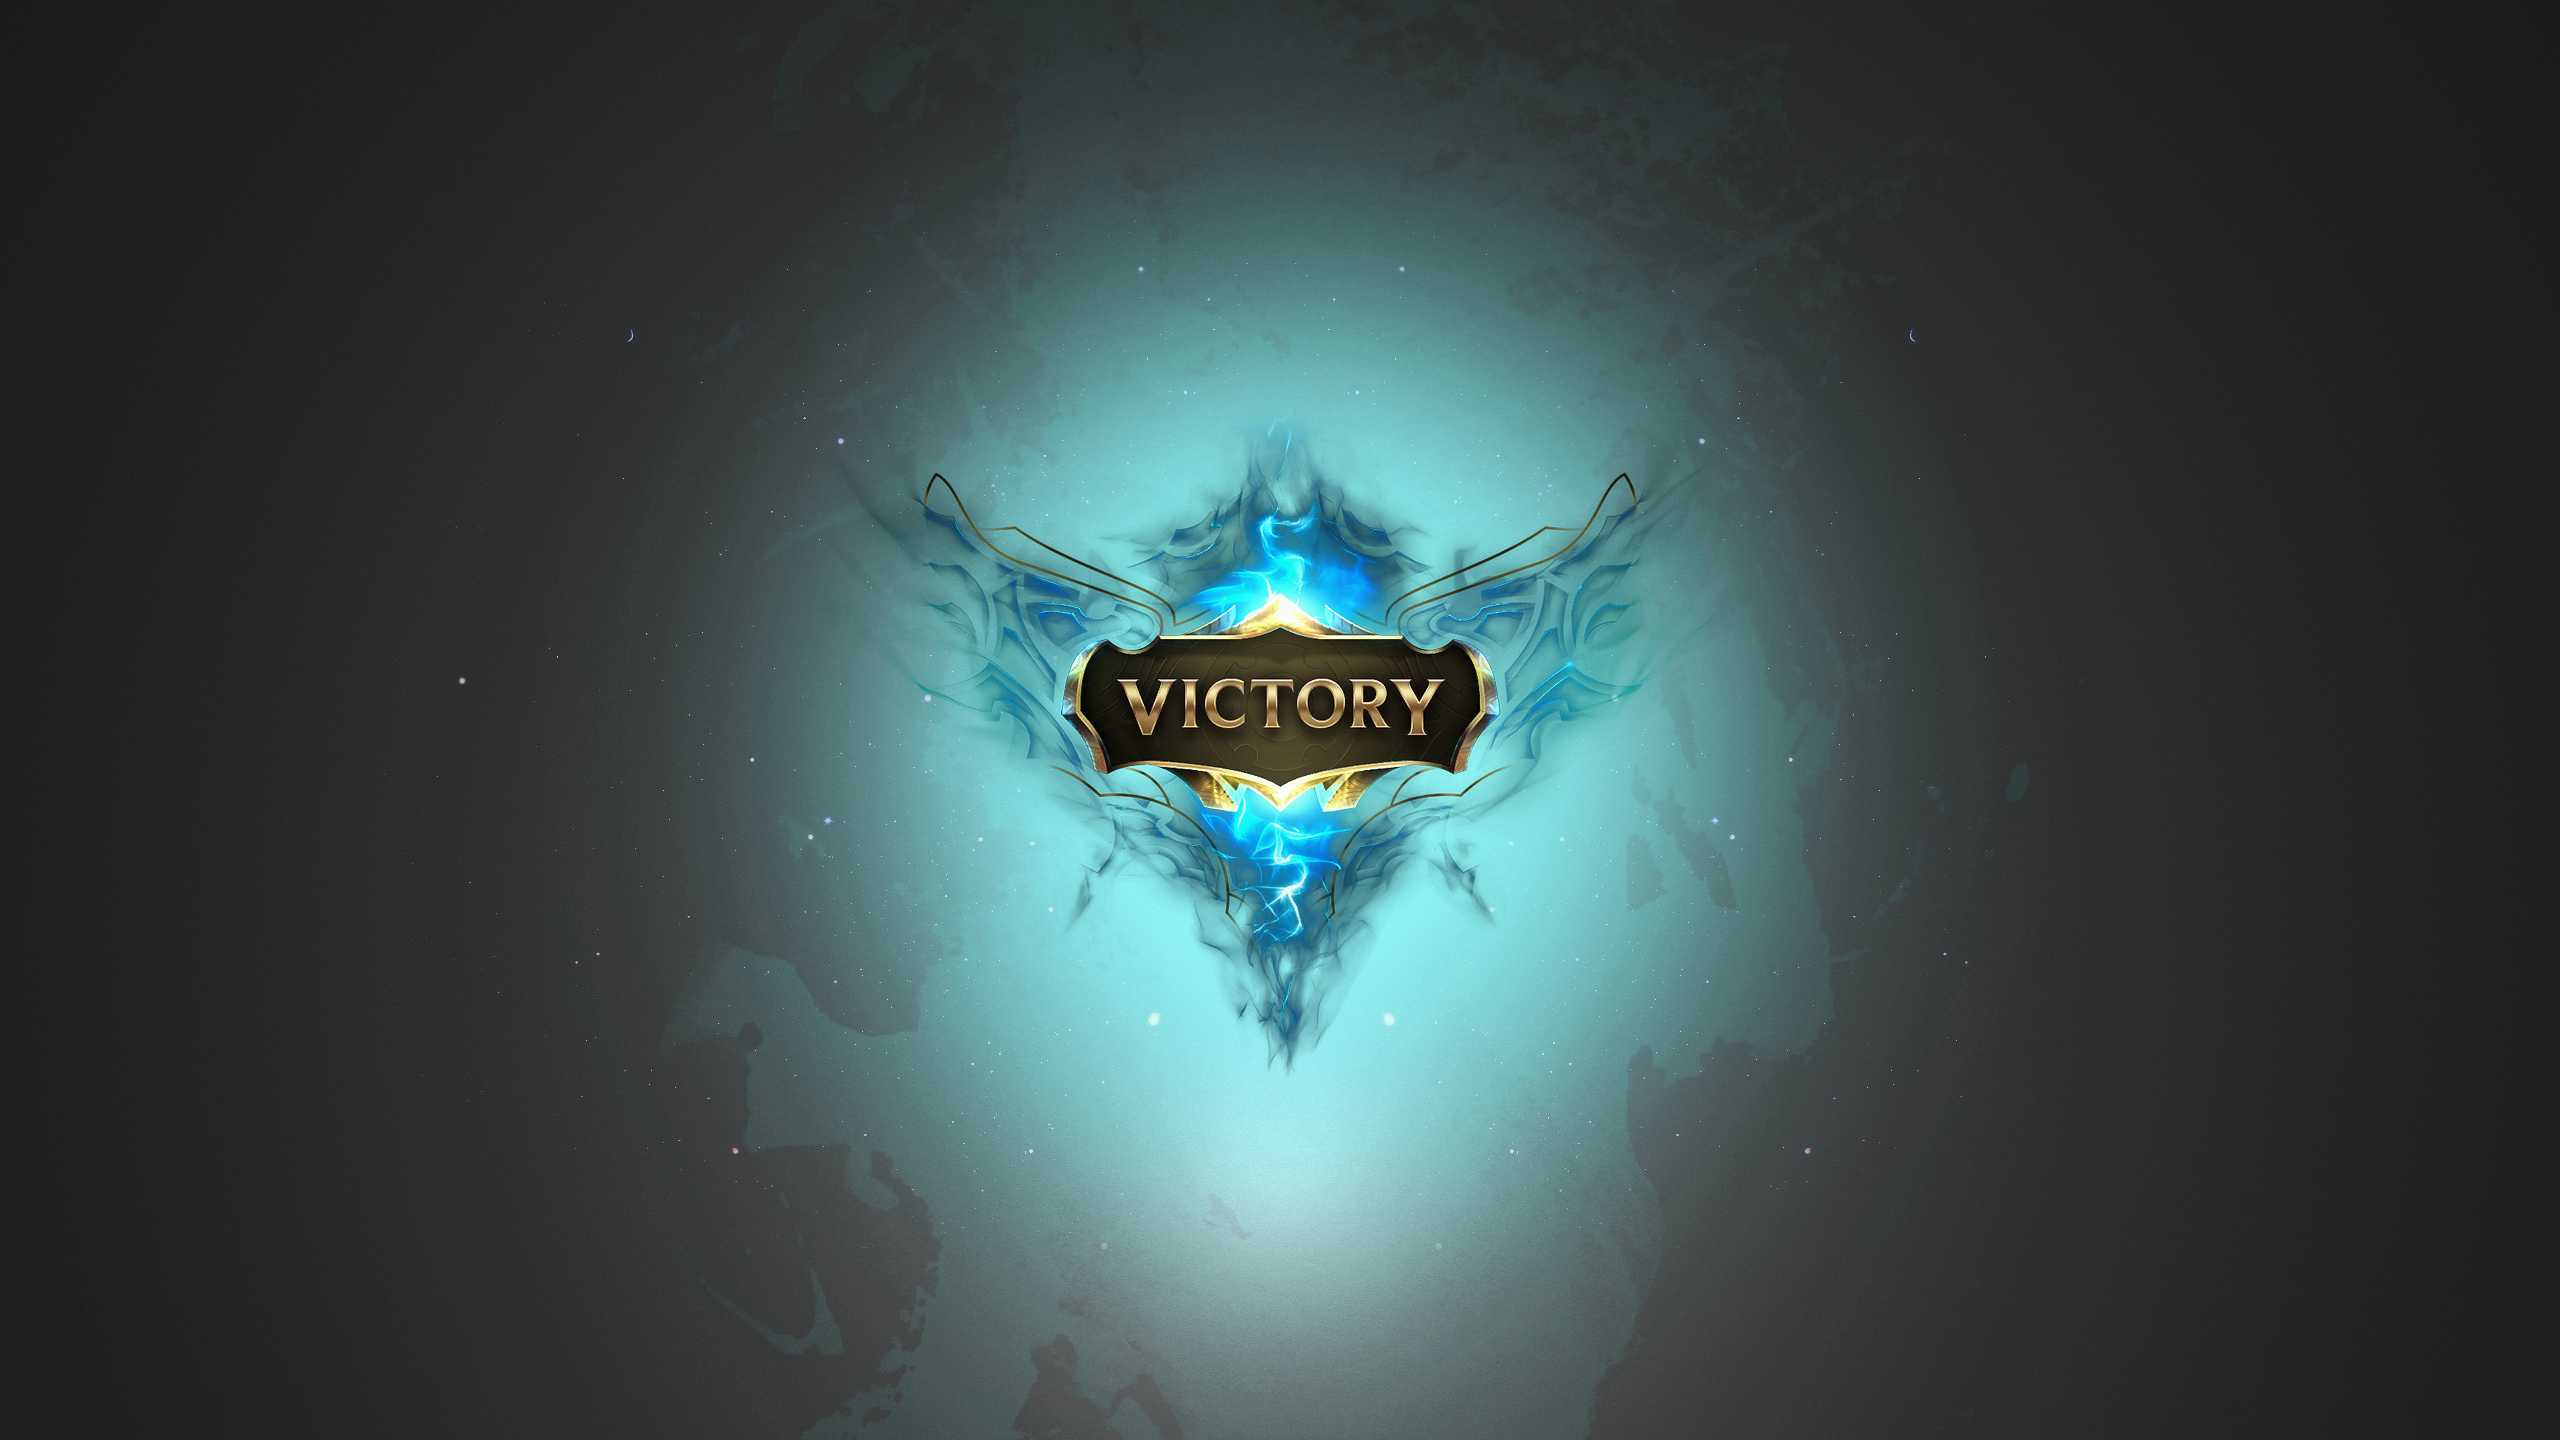 Victory Wallpapers